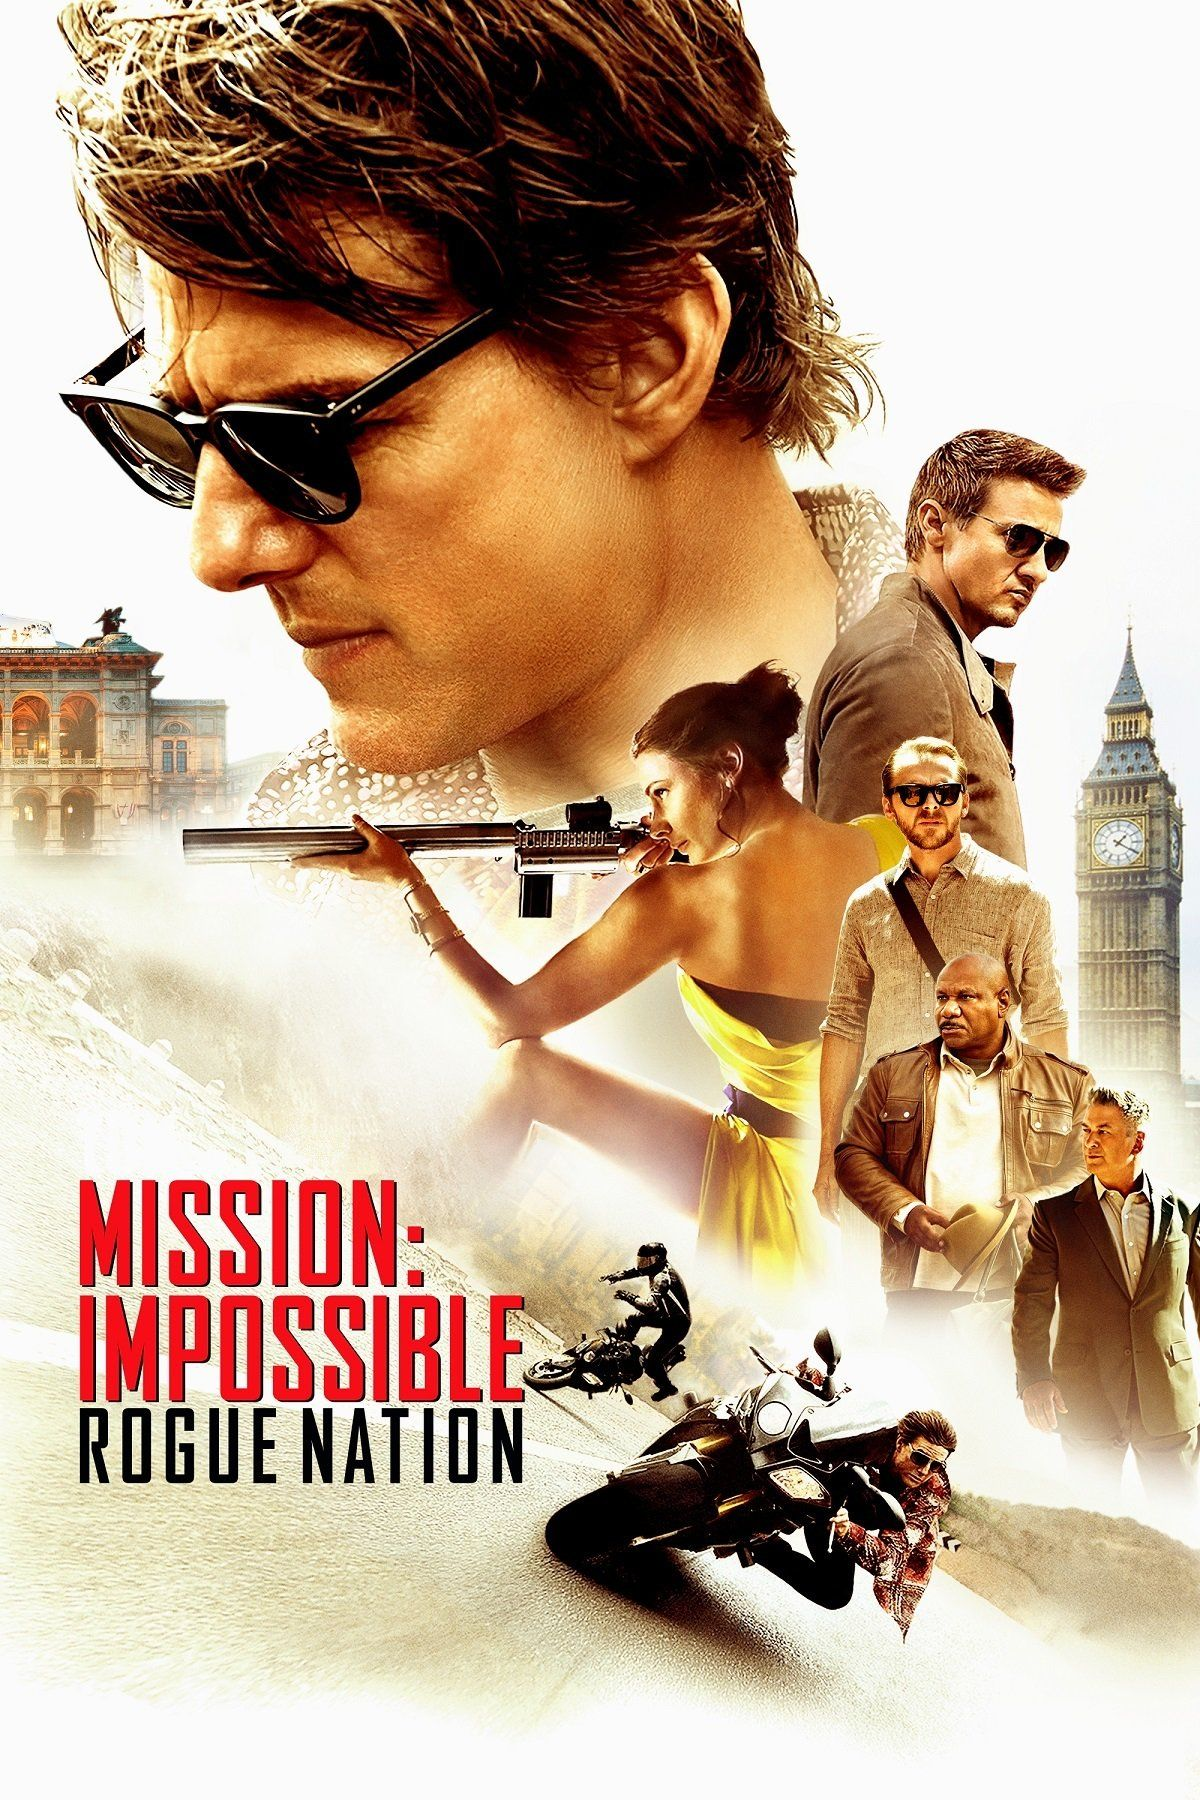 Mission: Impossible > Rogue Nation